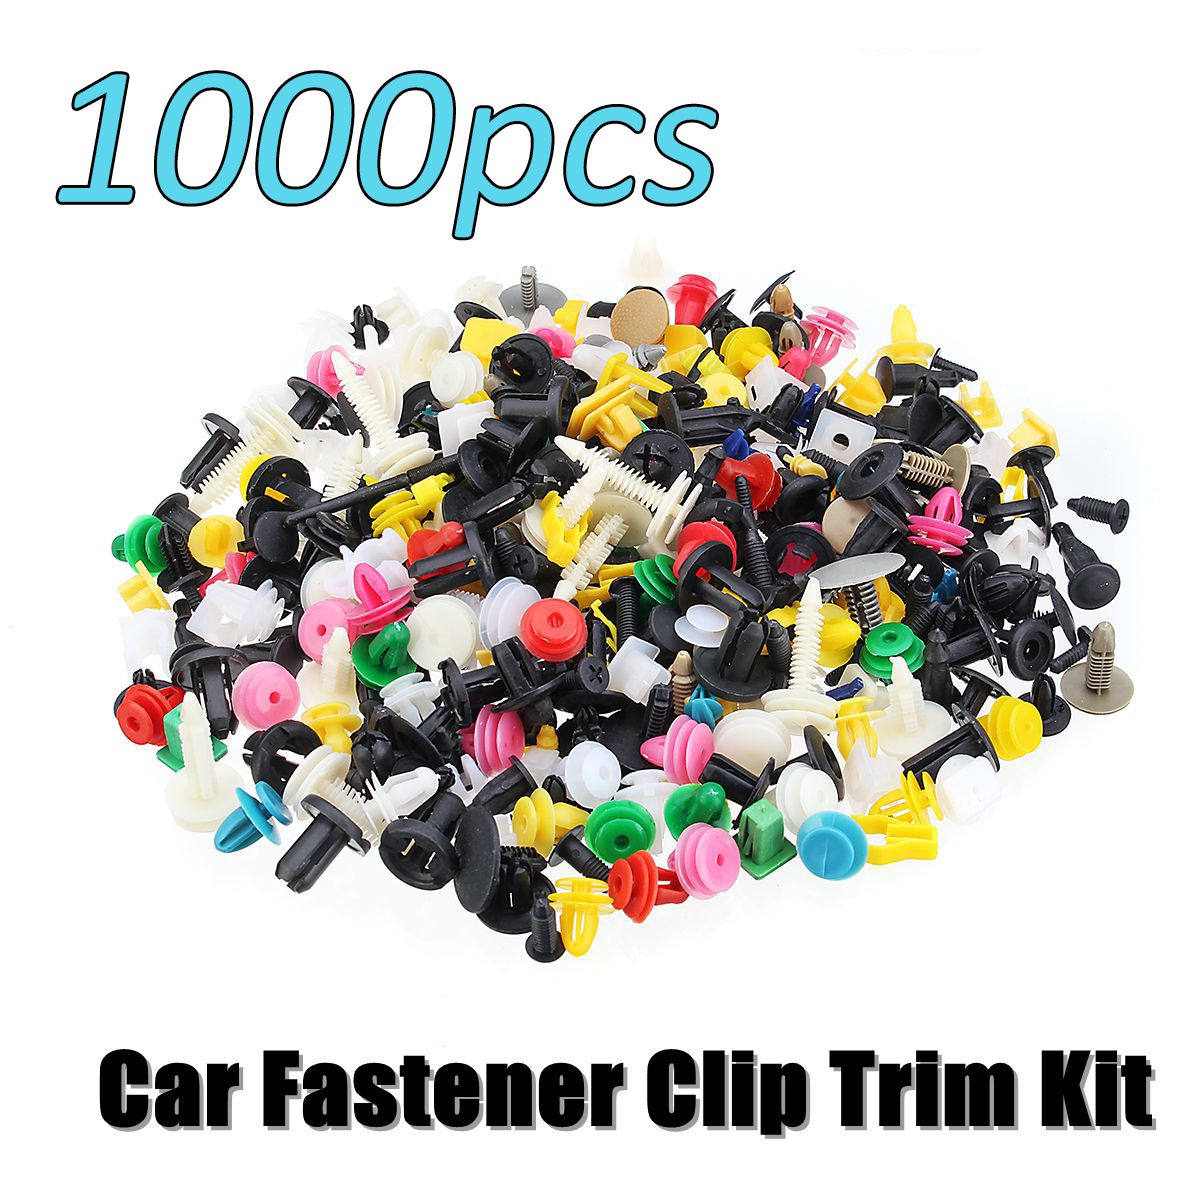 500Pcs Universal Mixed Auto Fastener Car Bumper Clips Retainer Push Engine Cover Car Fastener Rivet Door Panel for Fender Liner